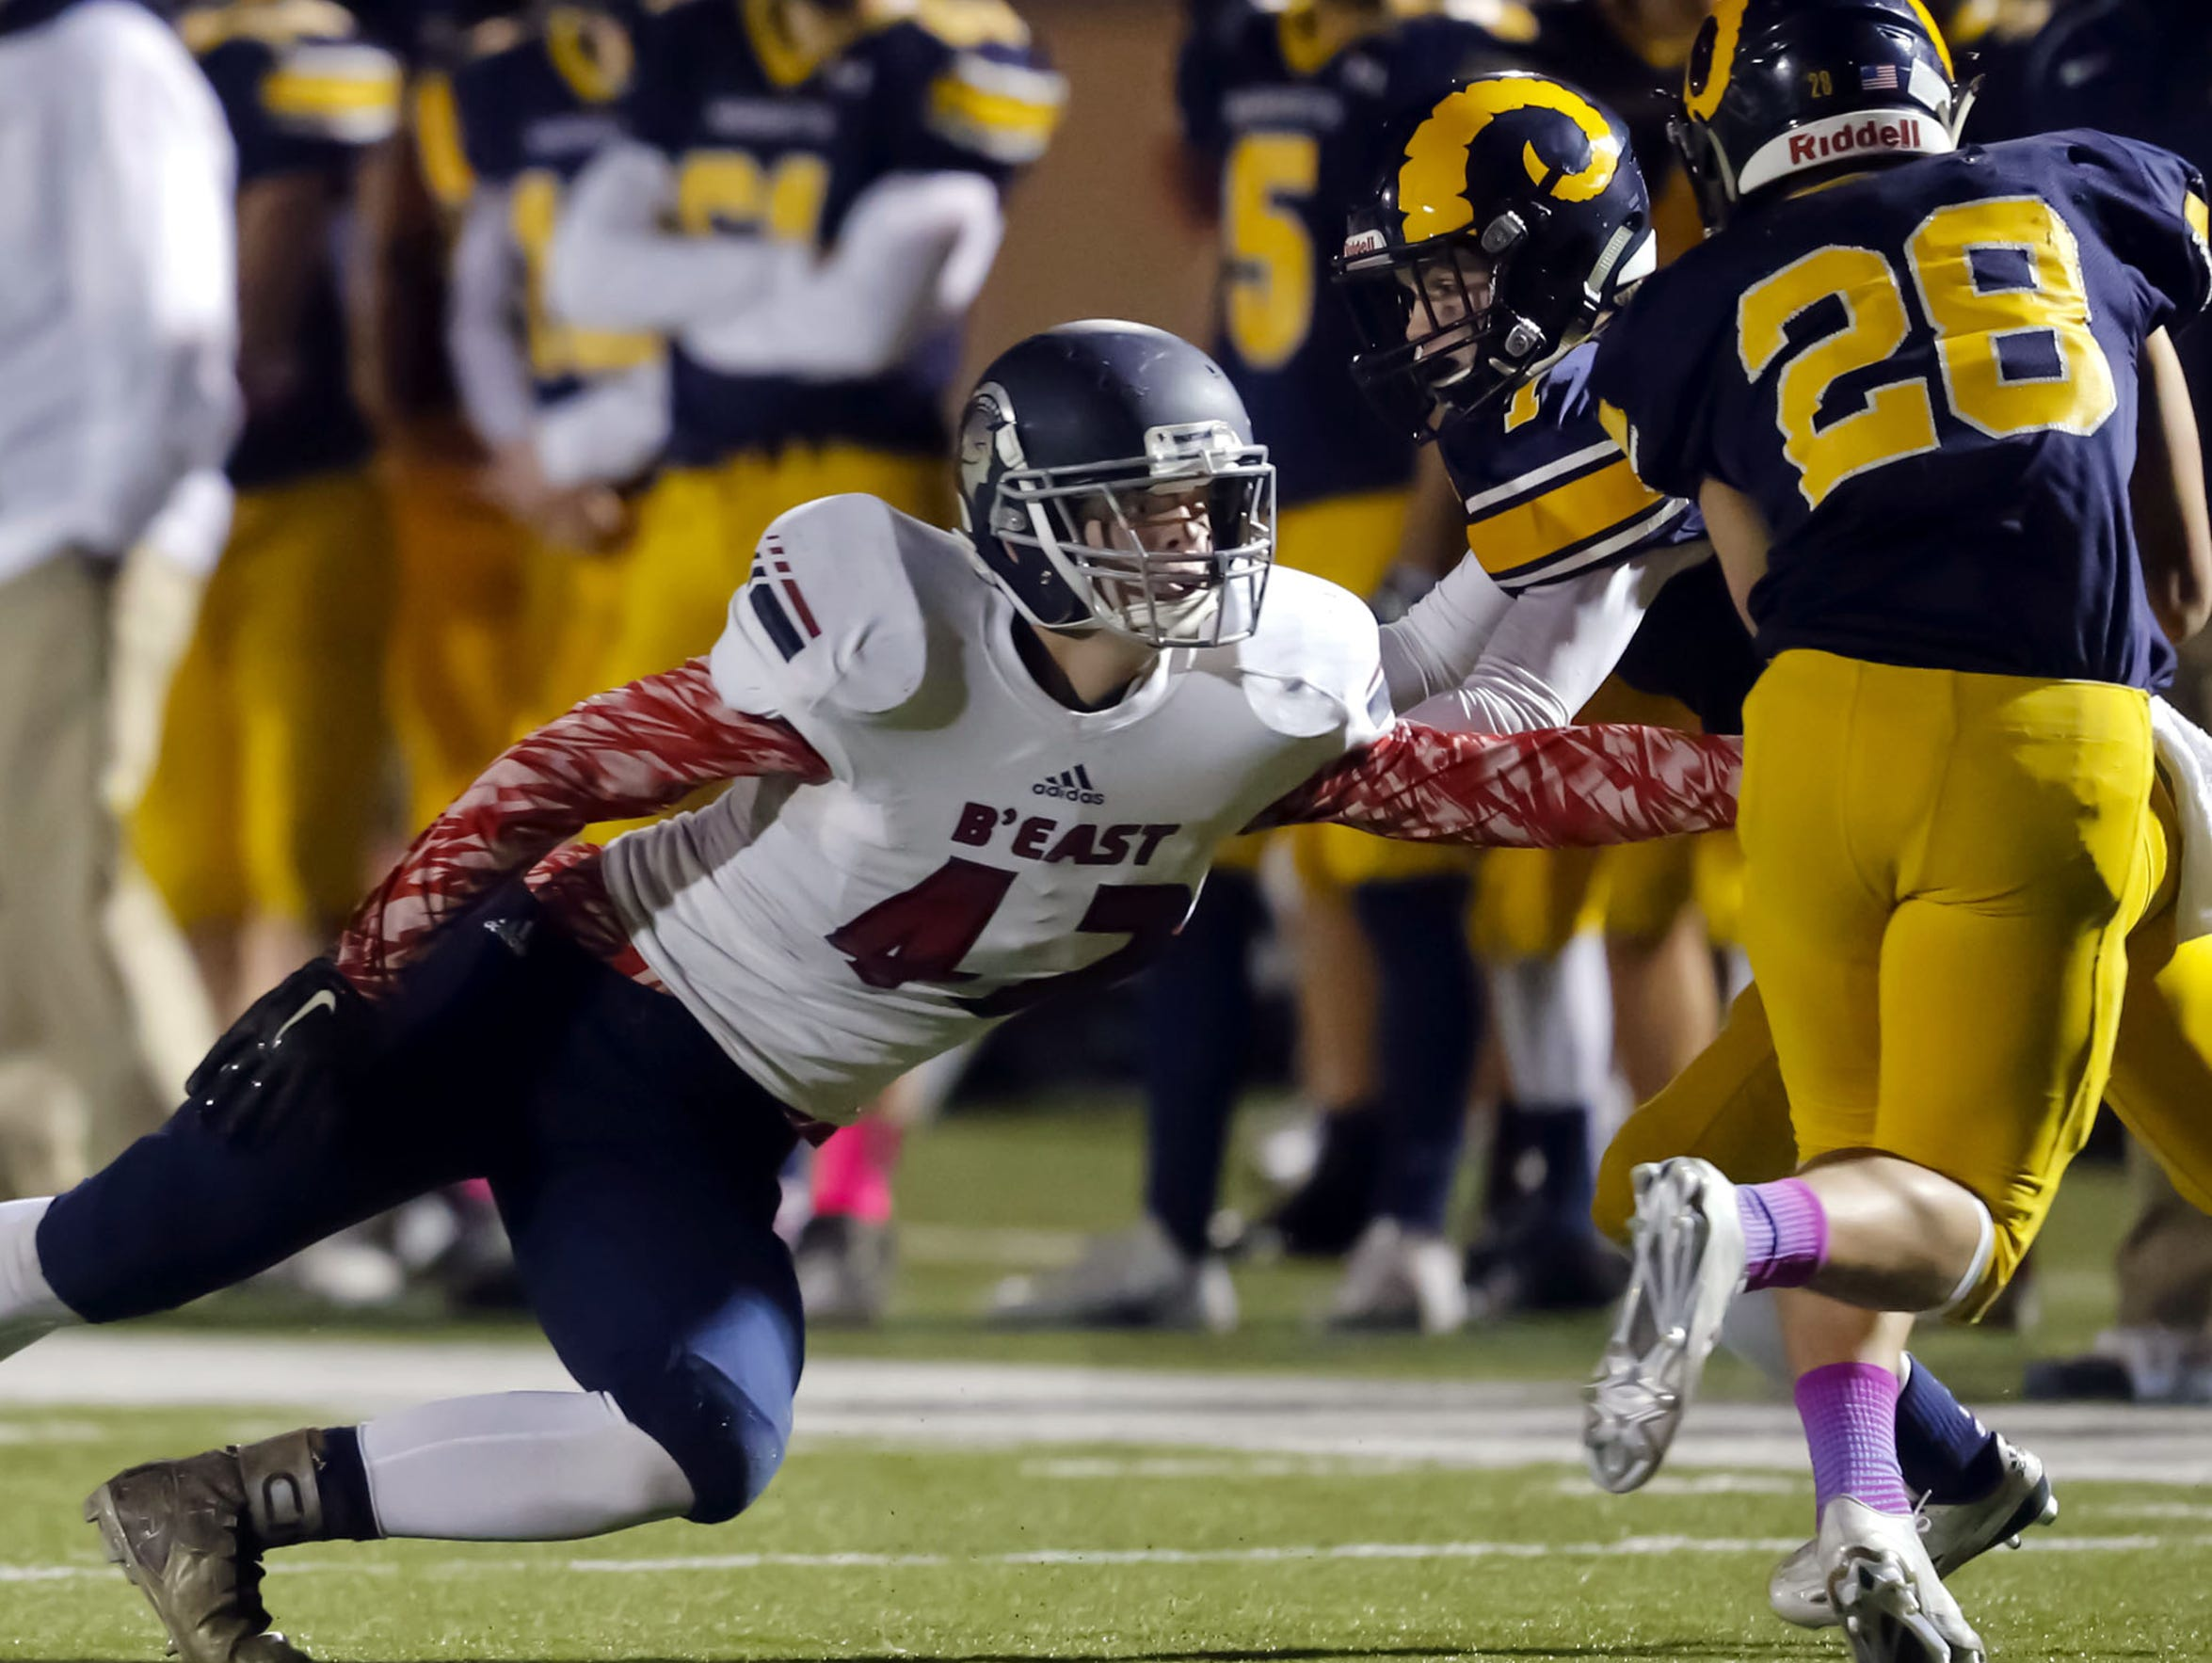 Brookfield East's Jack Steger attempts to tackle Marquette